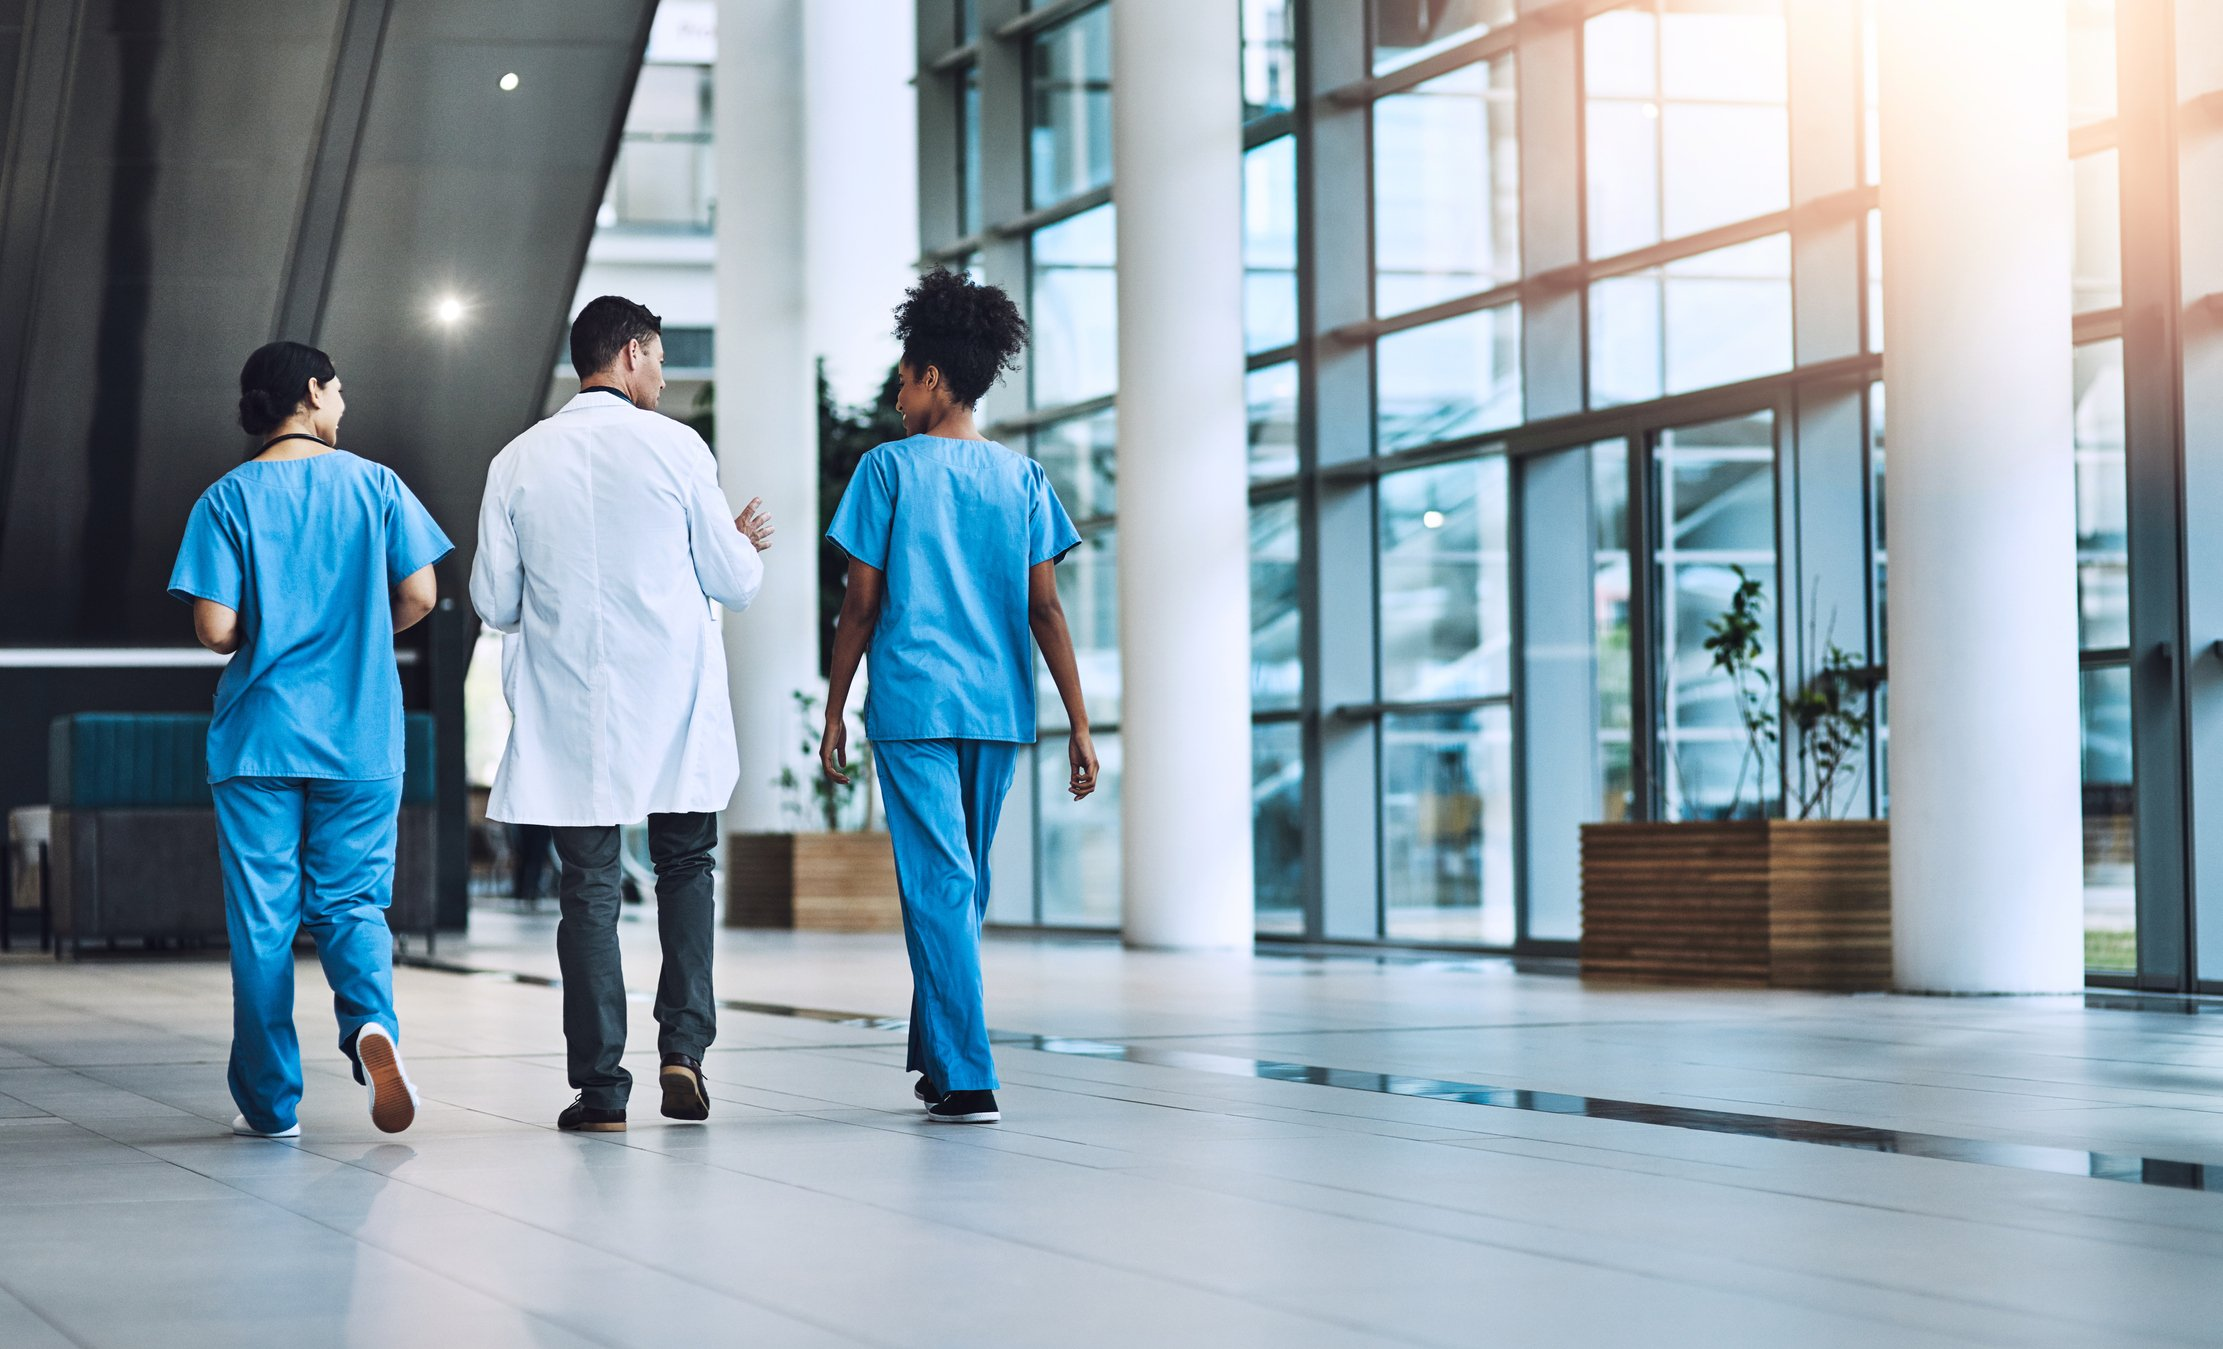 hospital staff and practitioners walking through a hospital lobby